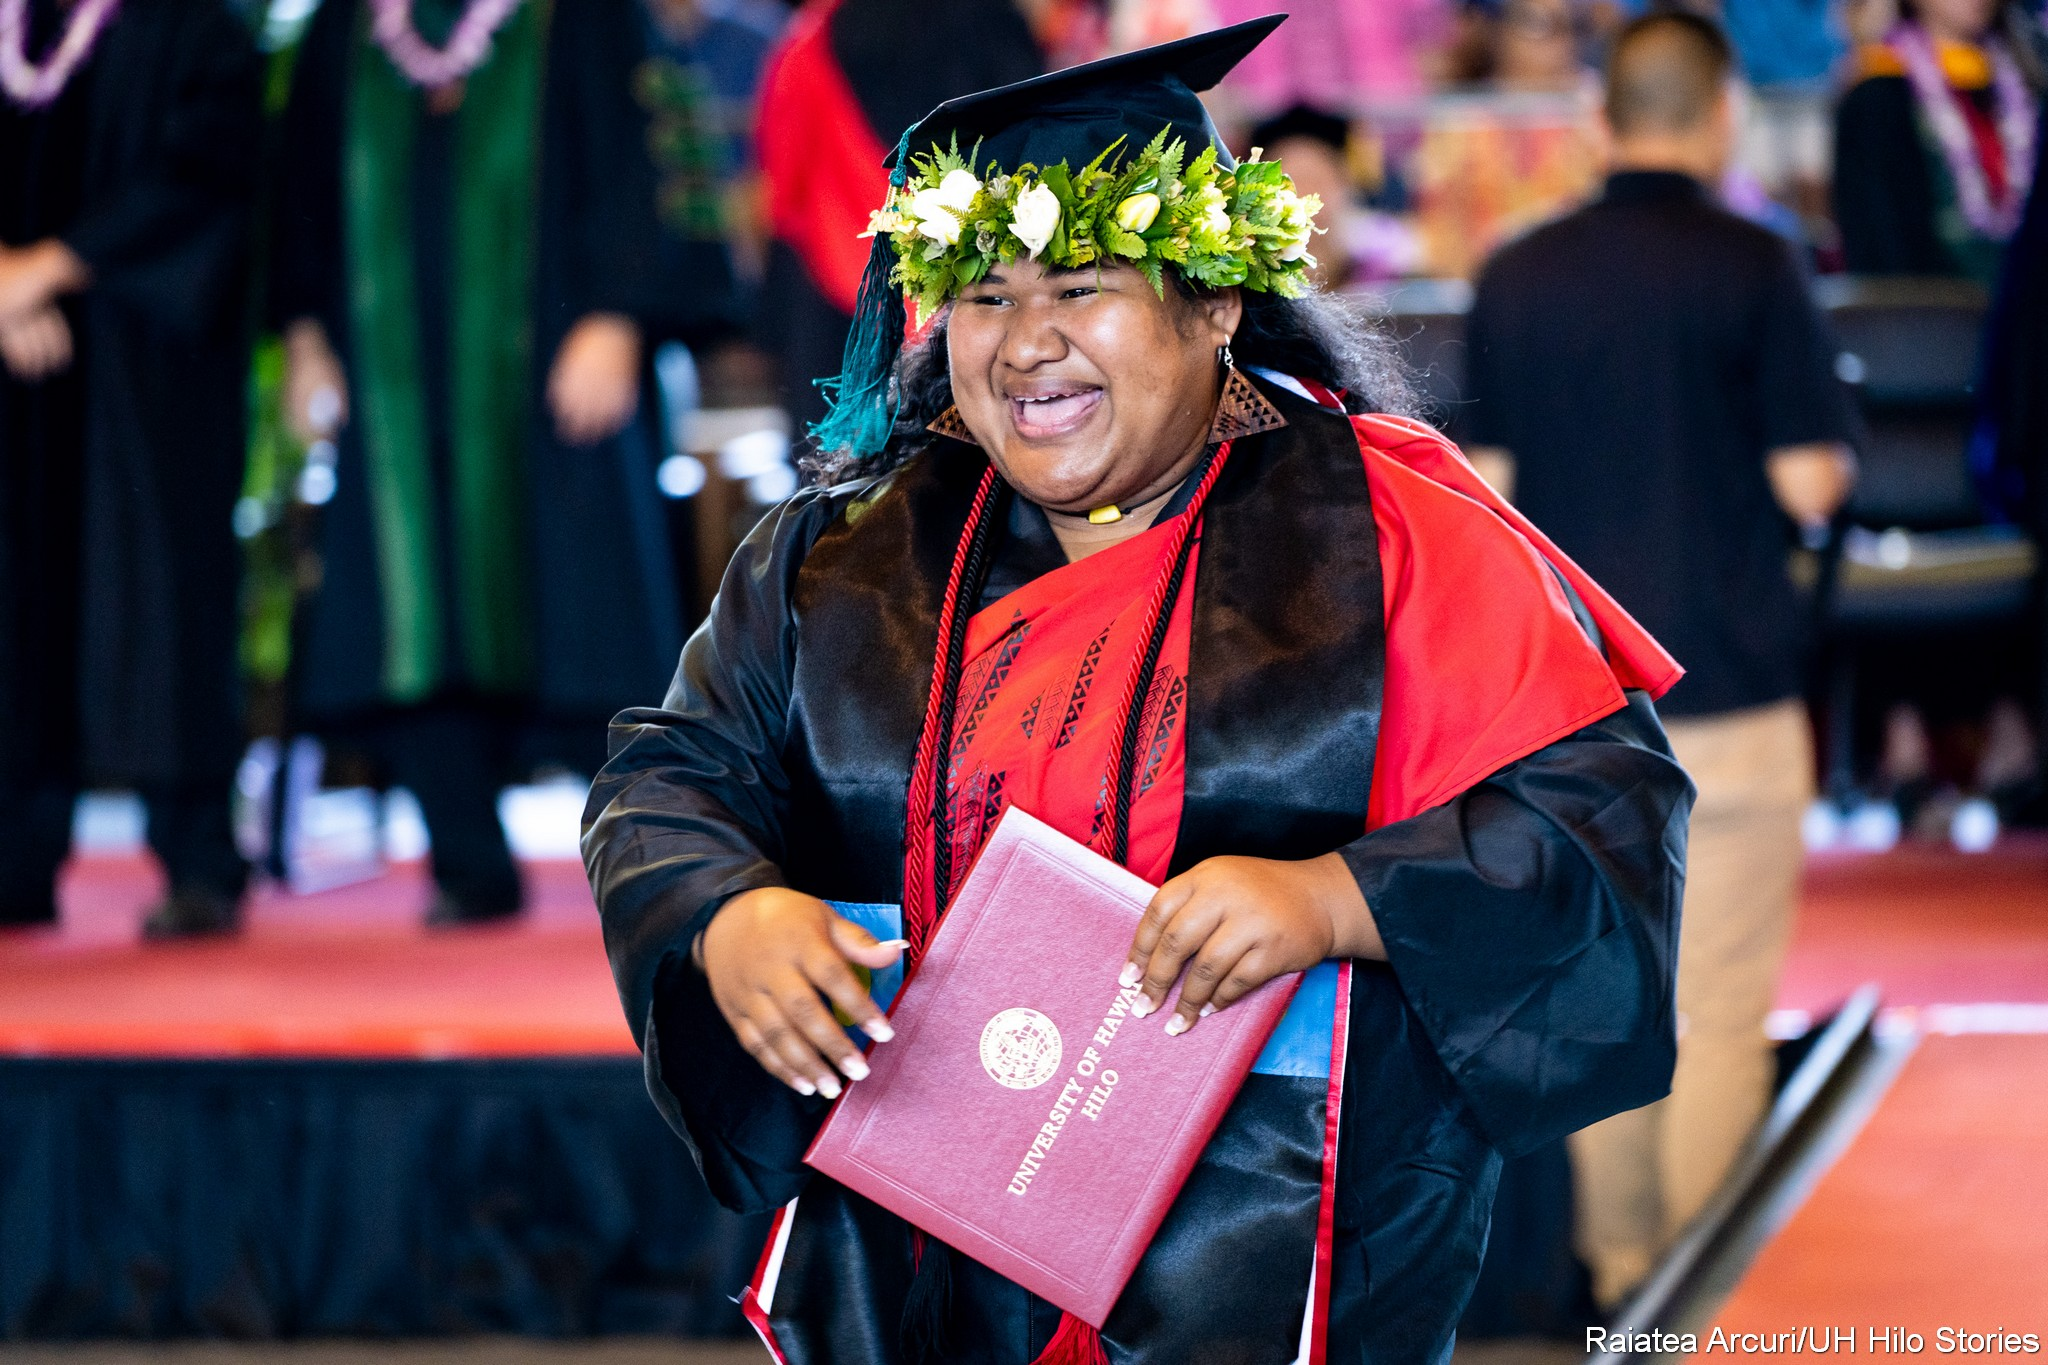 Big smile on female graduate as she leaves dais with diploma.